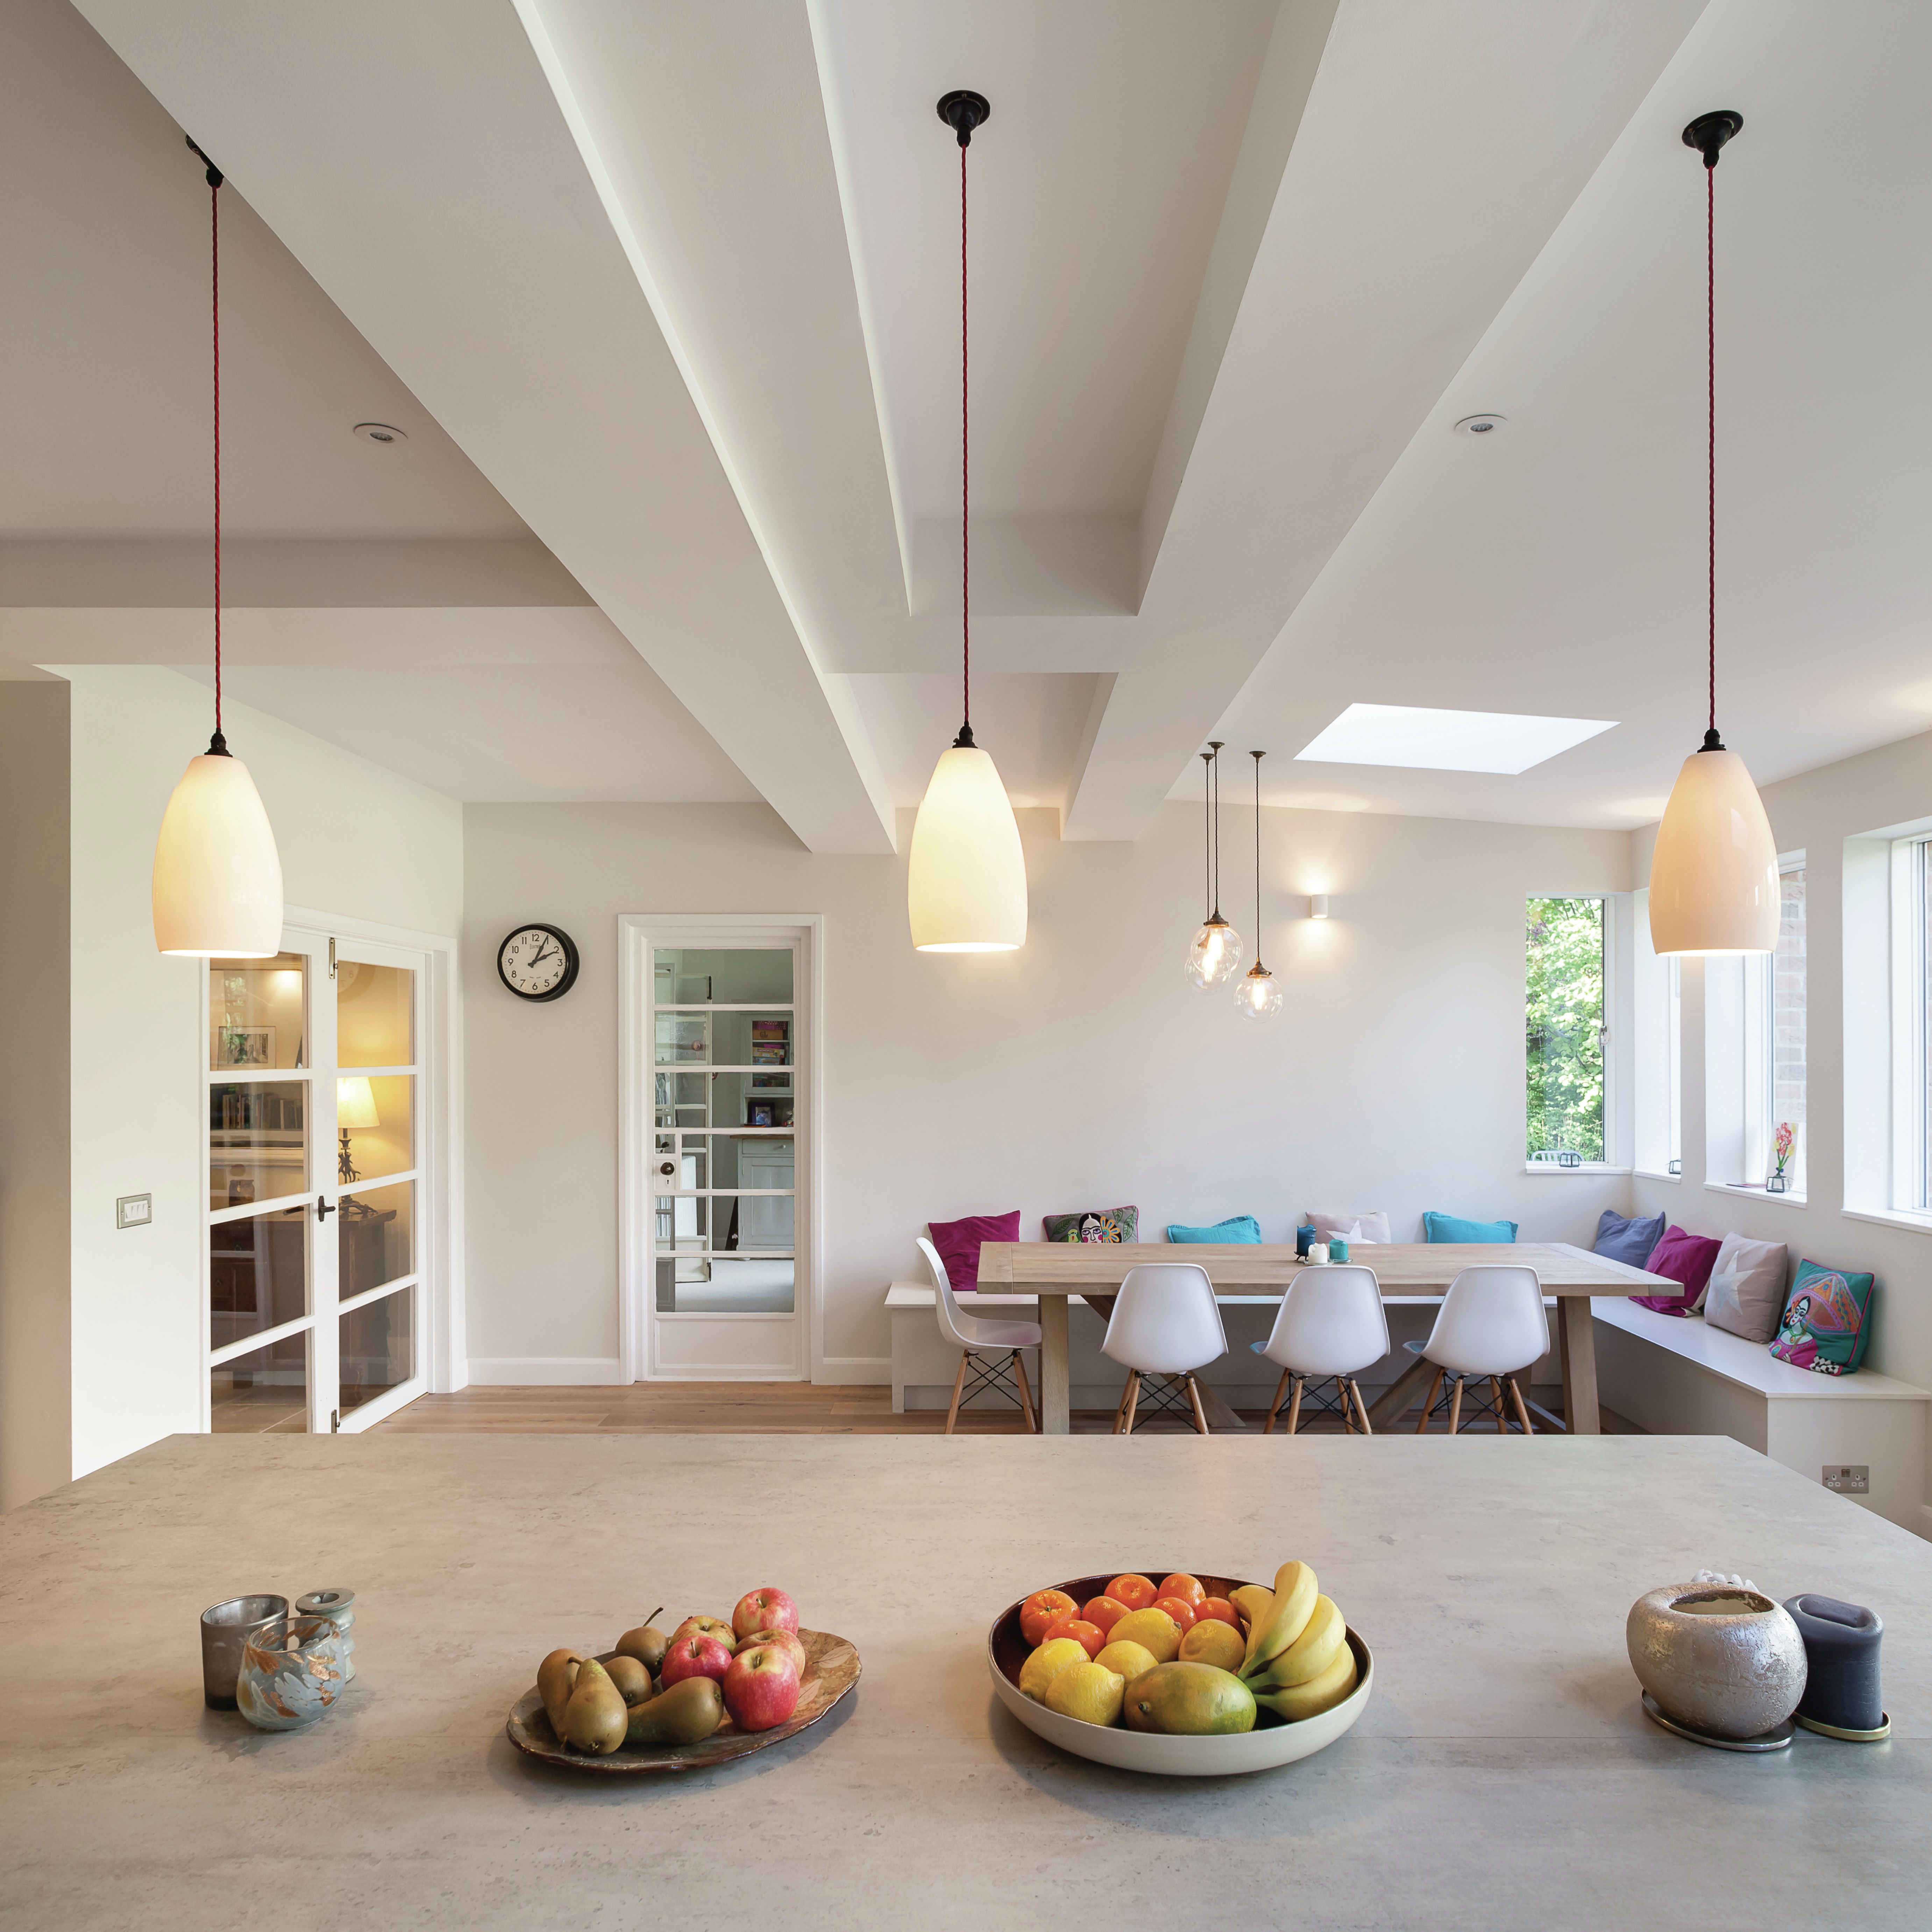 These Are The Dining Room Ideas That Are On Trend For 2020 Real Homes